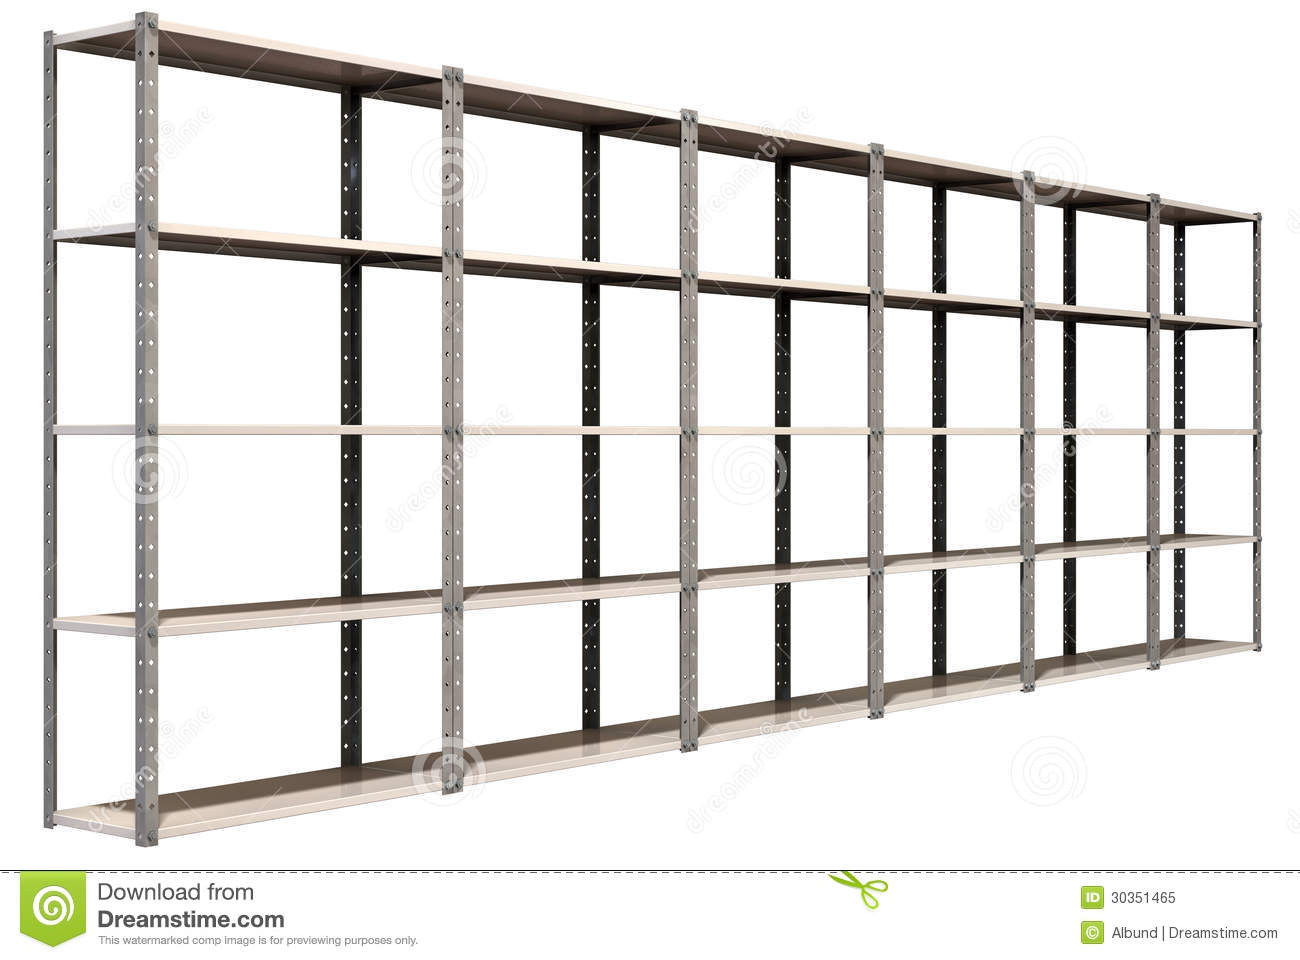 Lagerregal Clipart Warehouse Shelves Perspective Stock Illustration Image